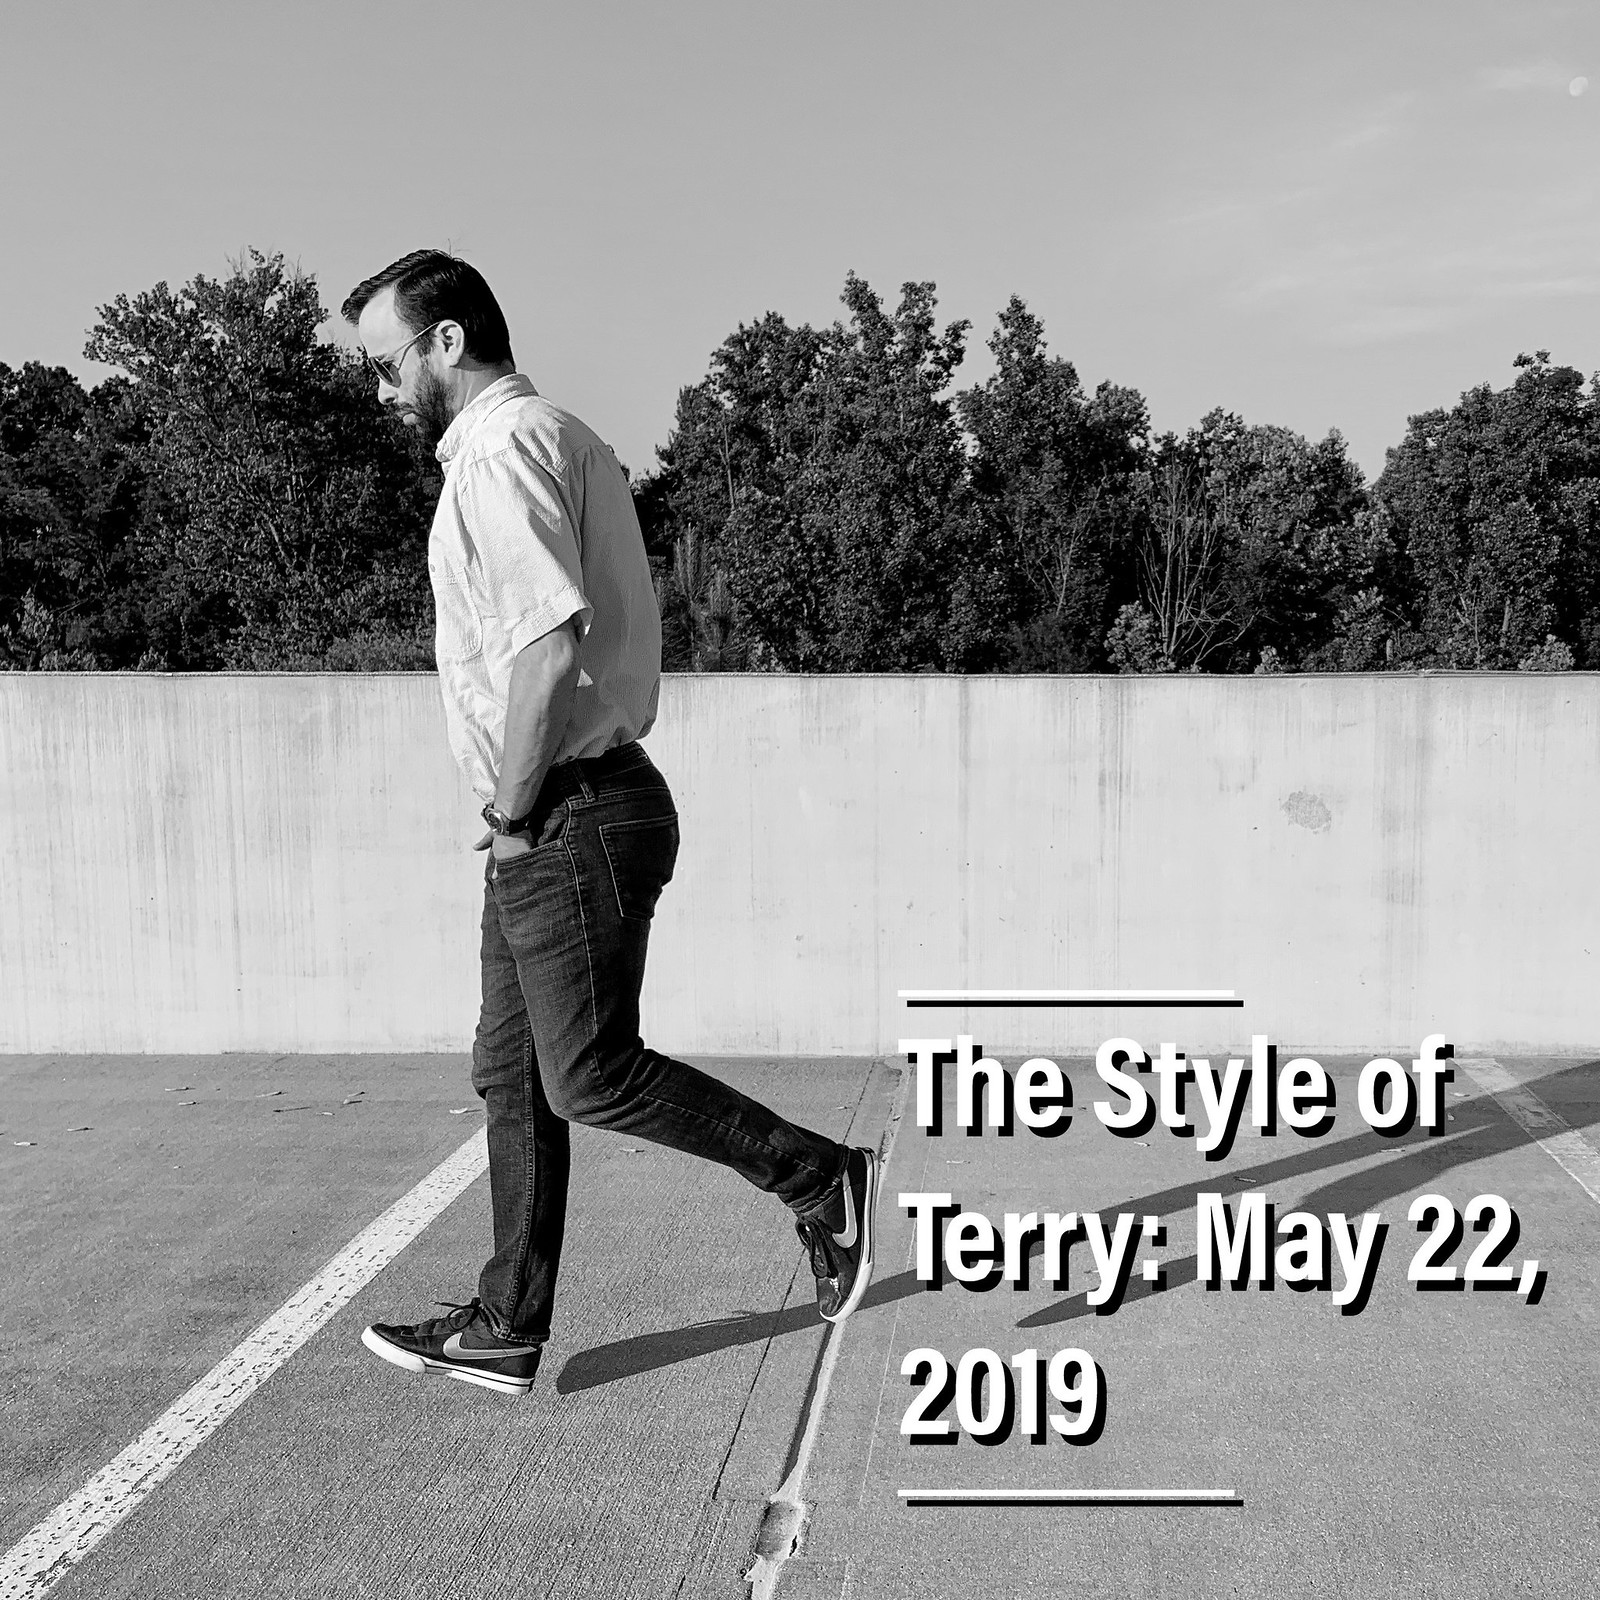 The Style of Terry: 5.22.19